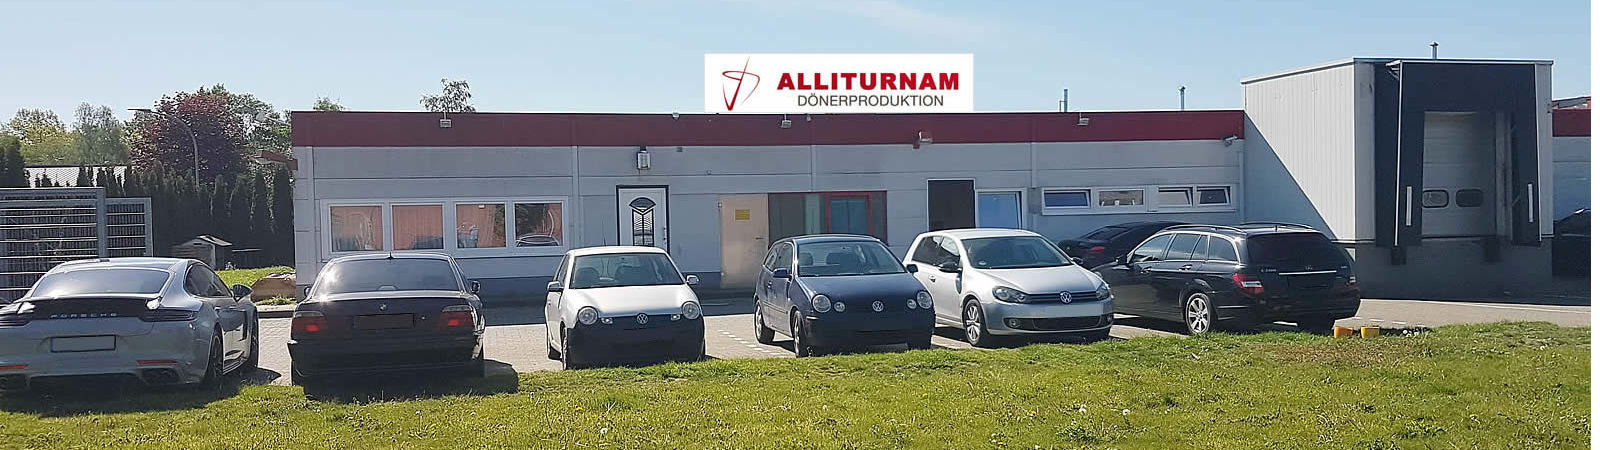 Alliturnam Dönerproduktion